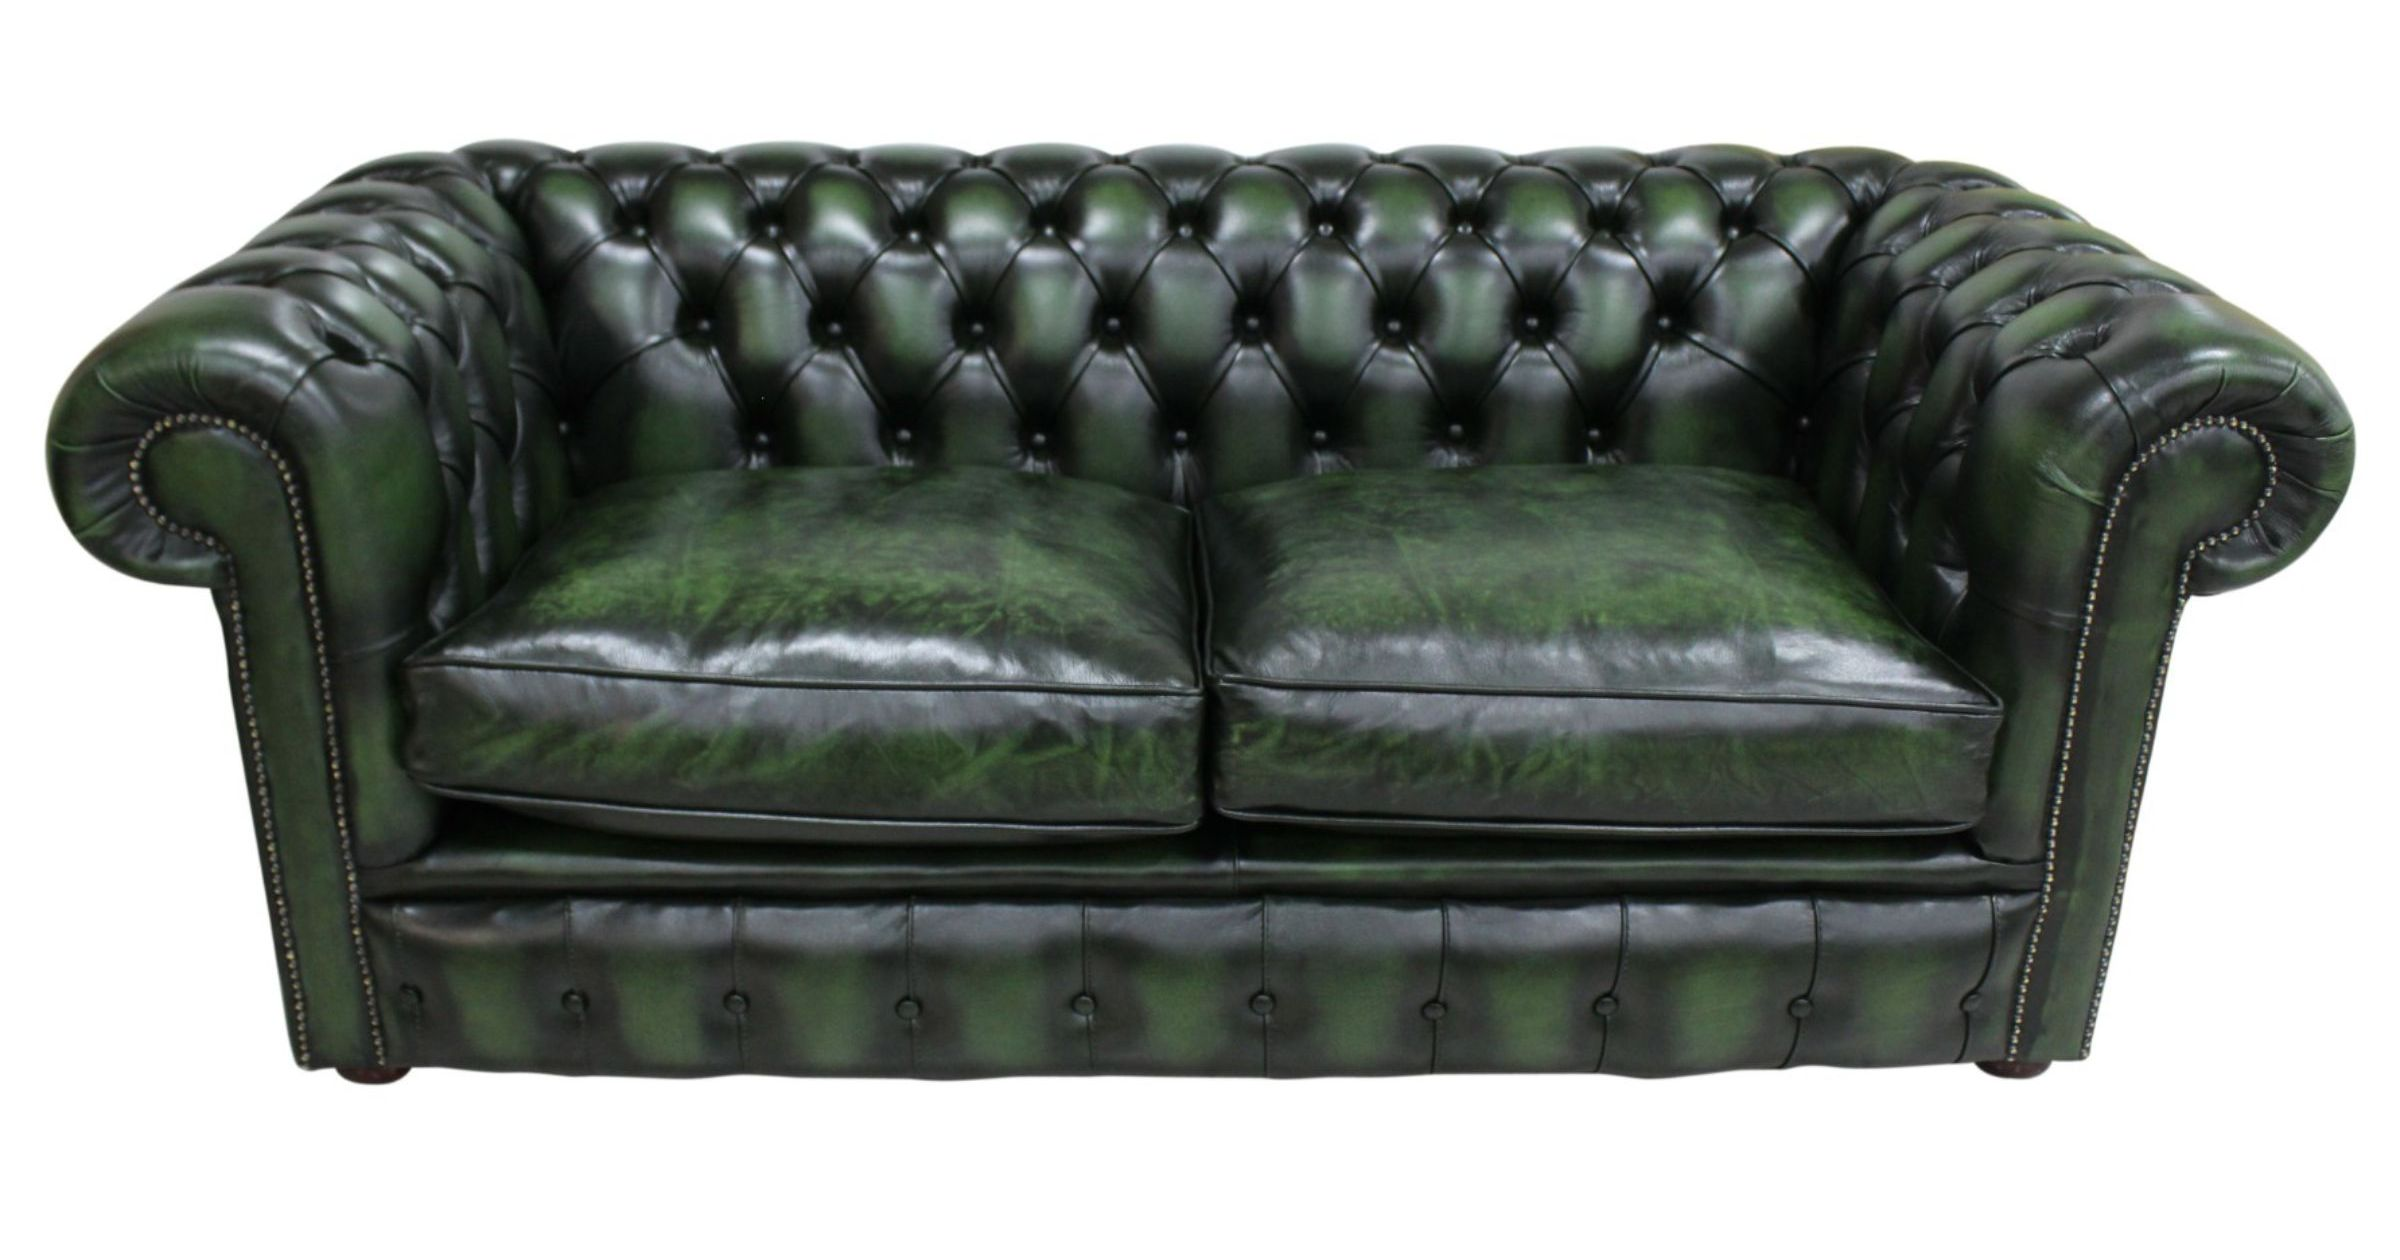 Grey Fabric Chaise Sofa Designersofas4u | 2.5 Seat Green Leather Chesterfield Sofa